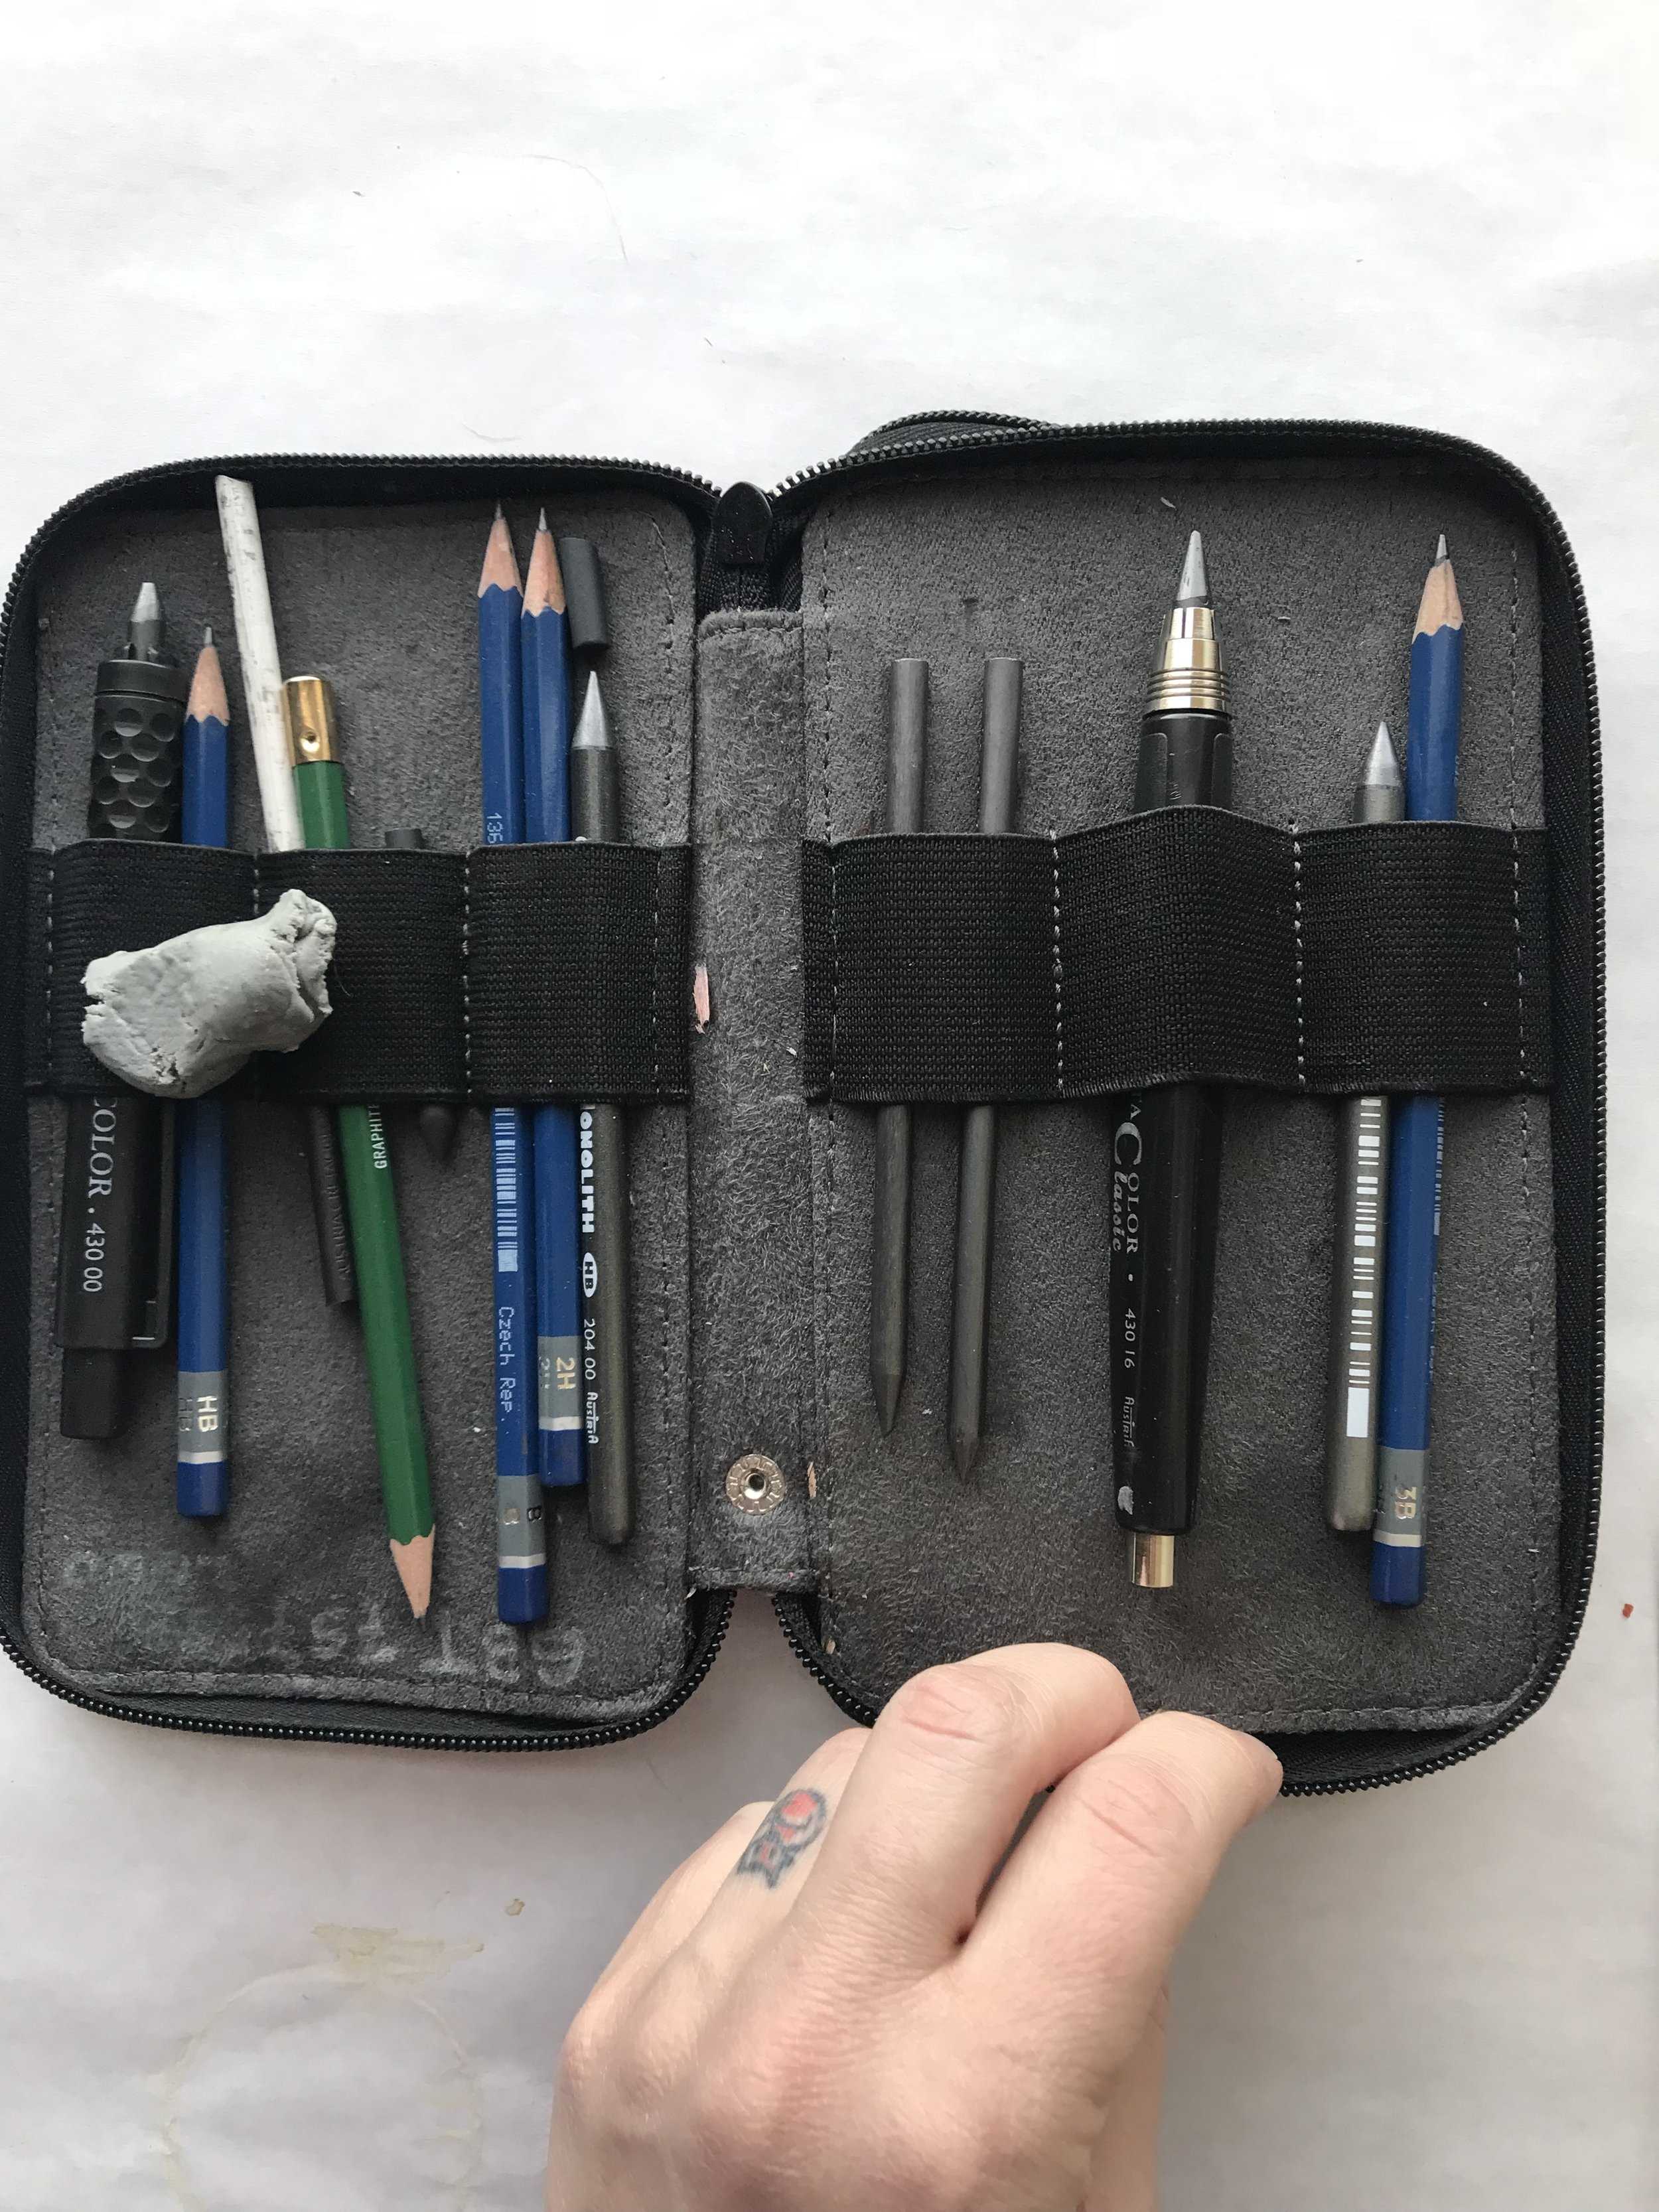 note the eraser and graphite holder tossed in